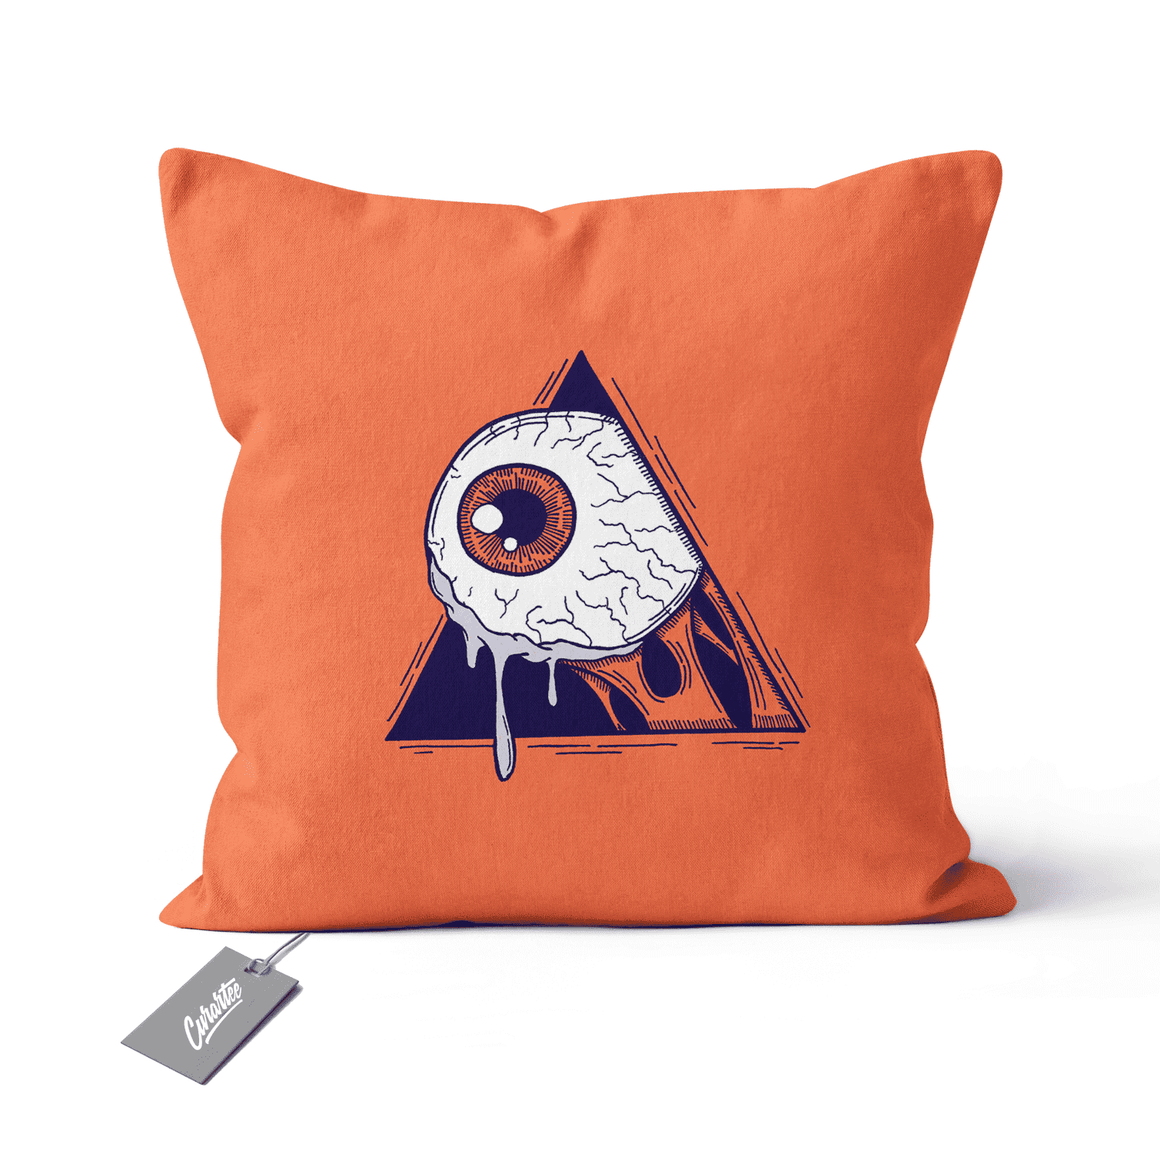 A Clockwork Eye Cushion - Premium Artwear Curartee